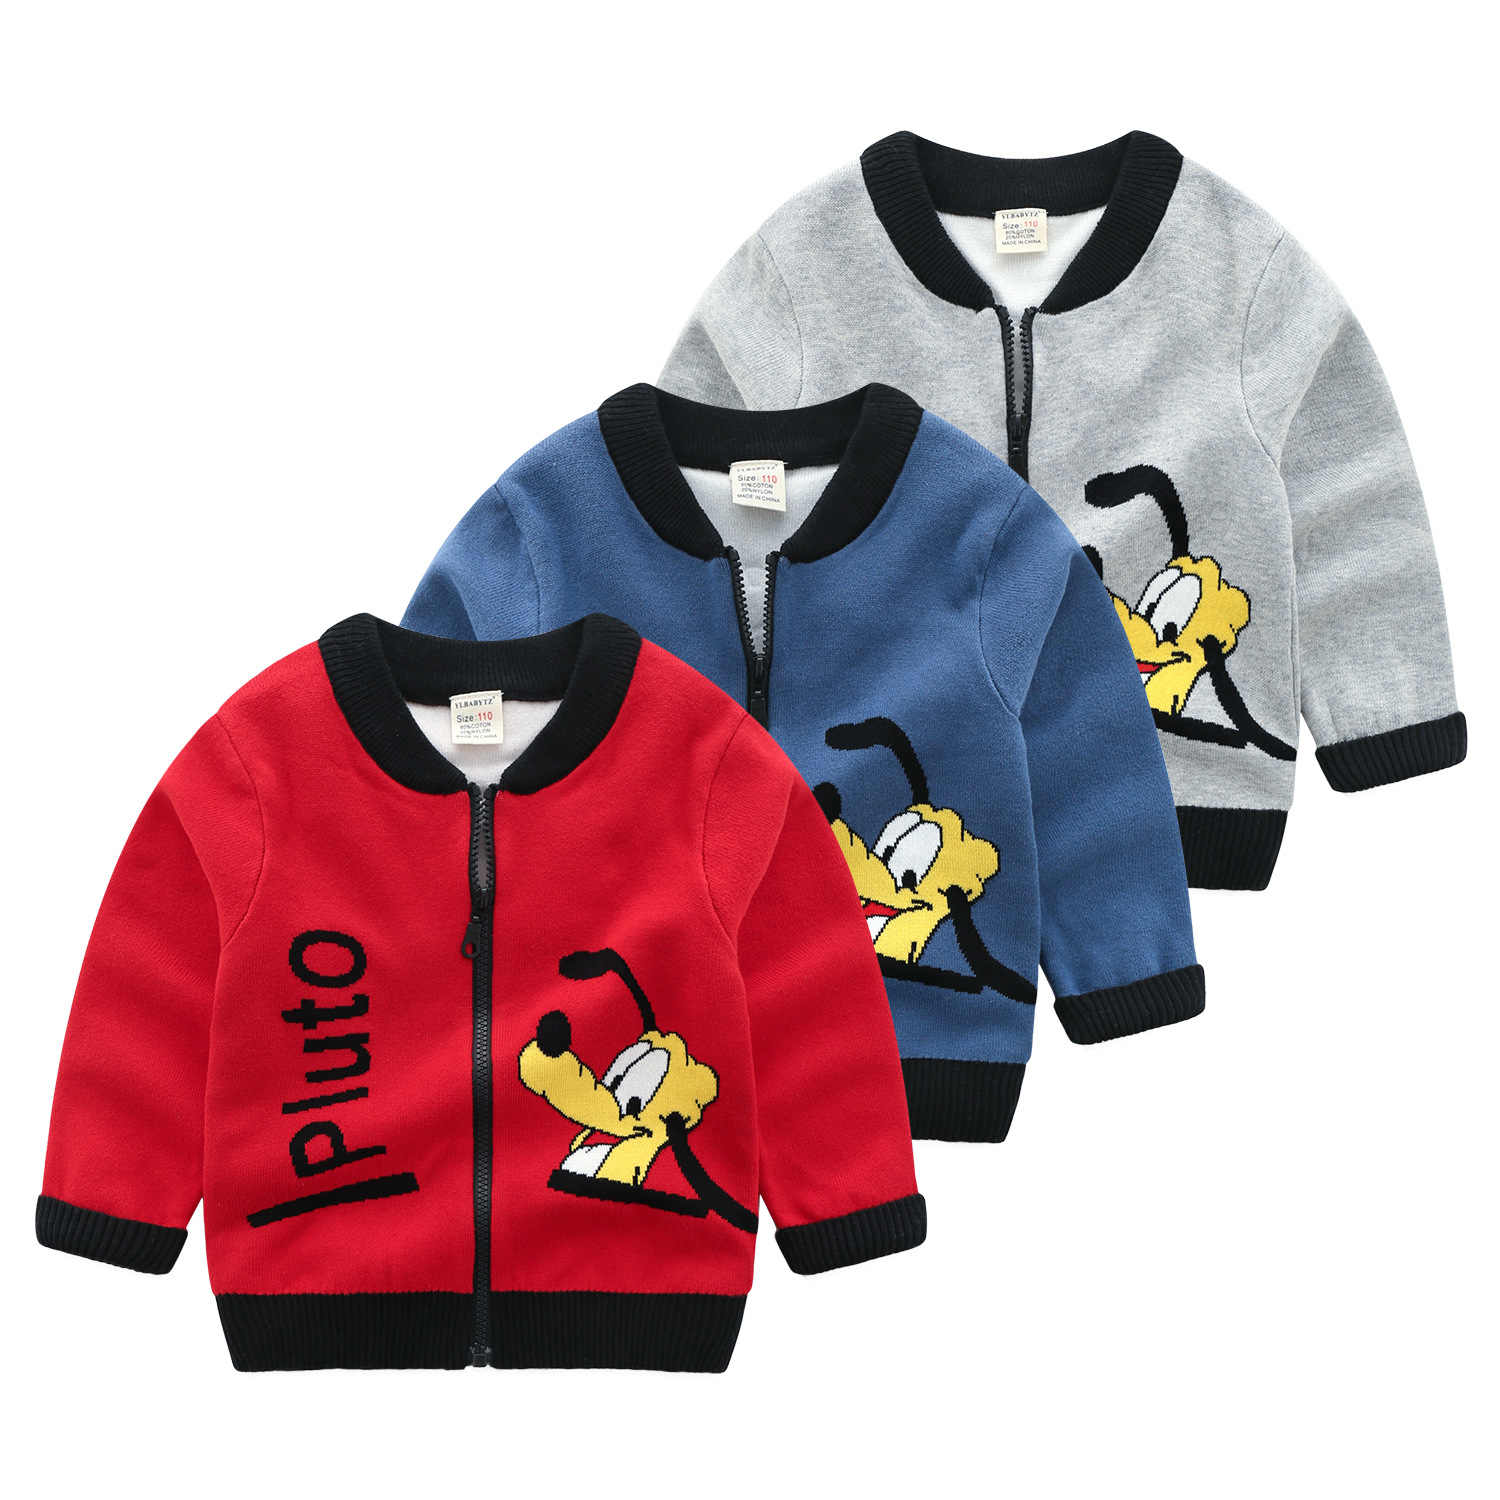 7649c4753 Detail Feedback Questions about 2018 Winter Baby Sweater Cartoon ...